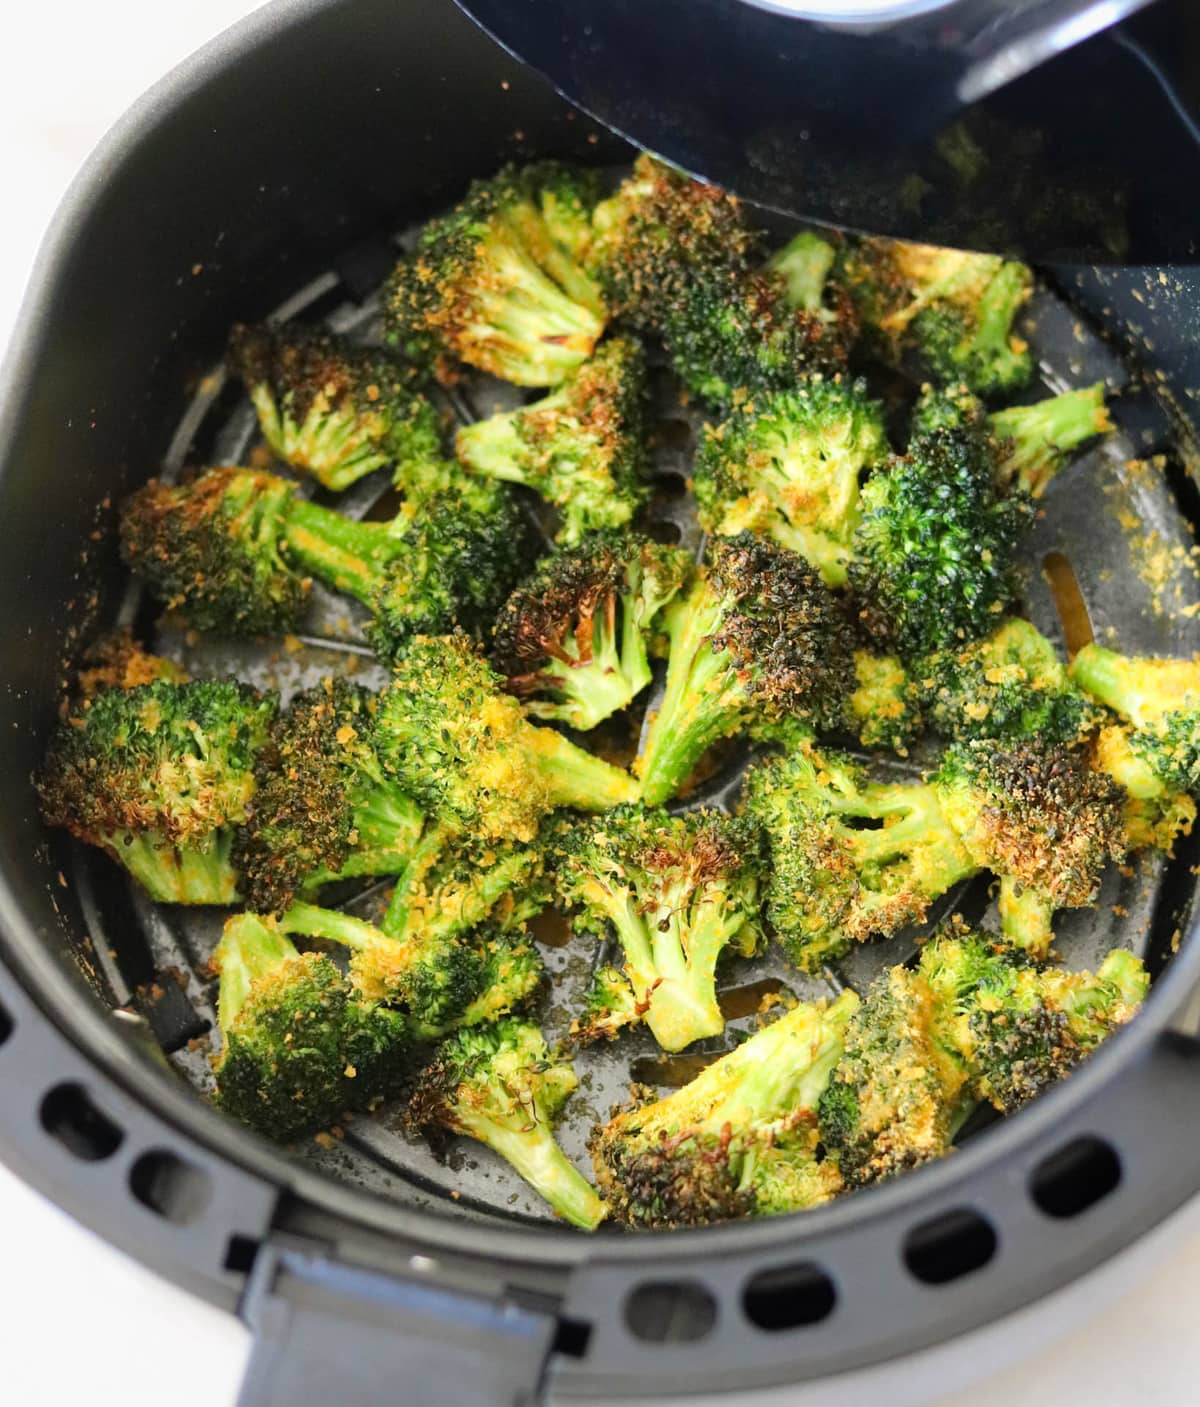 The finished crispy broccoli in the air fryer basket.